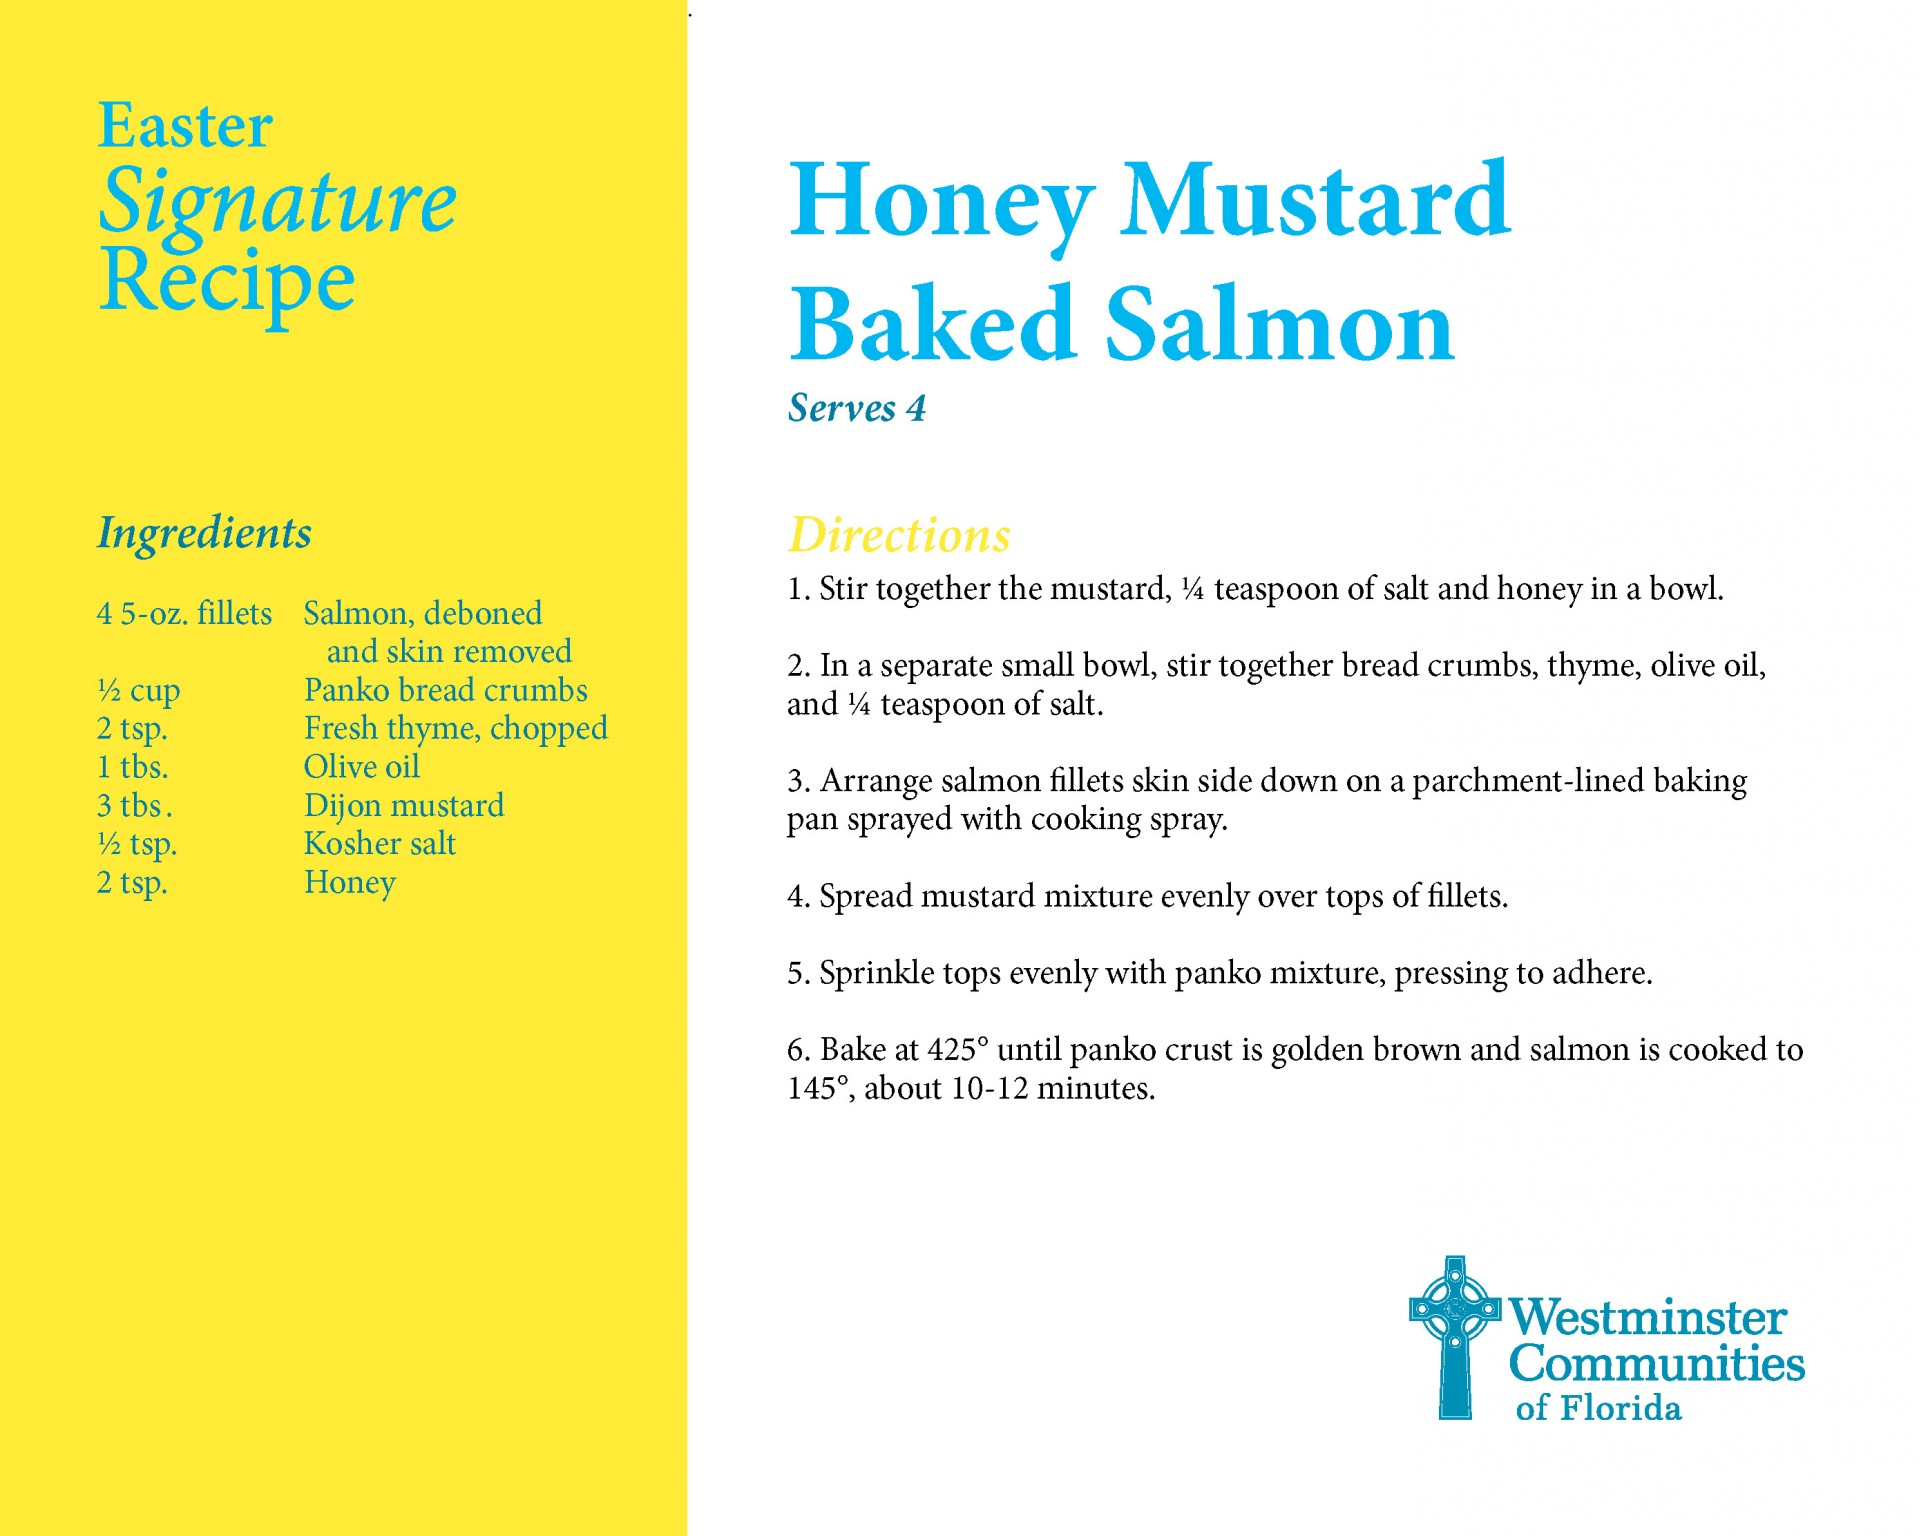 Signature Recipe for Honey Mustard Baked Salmon